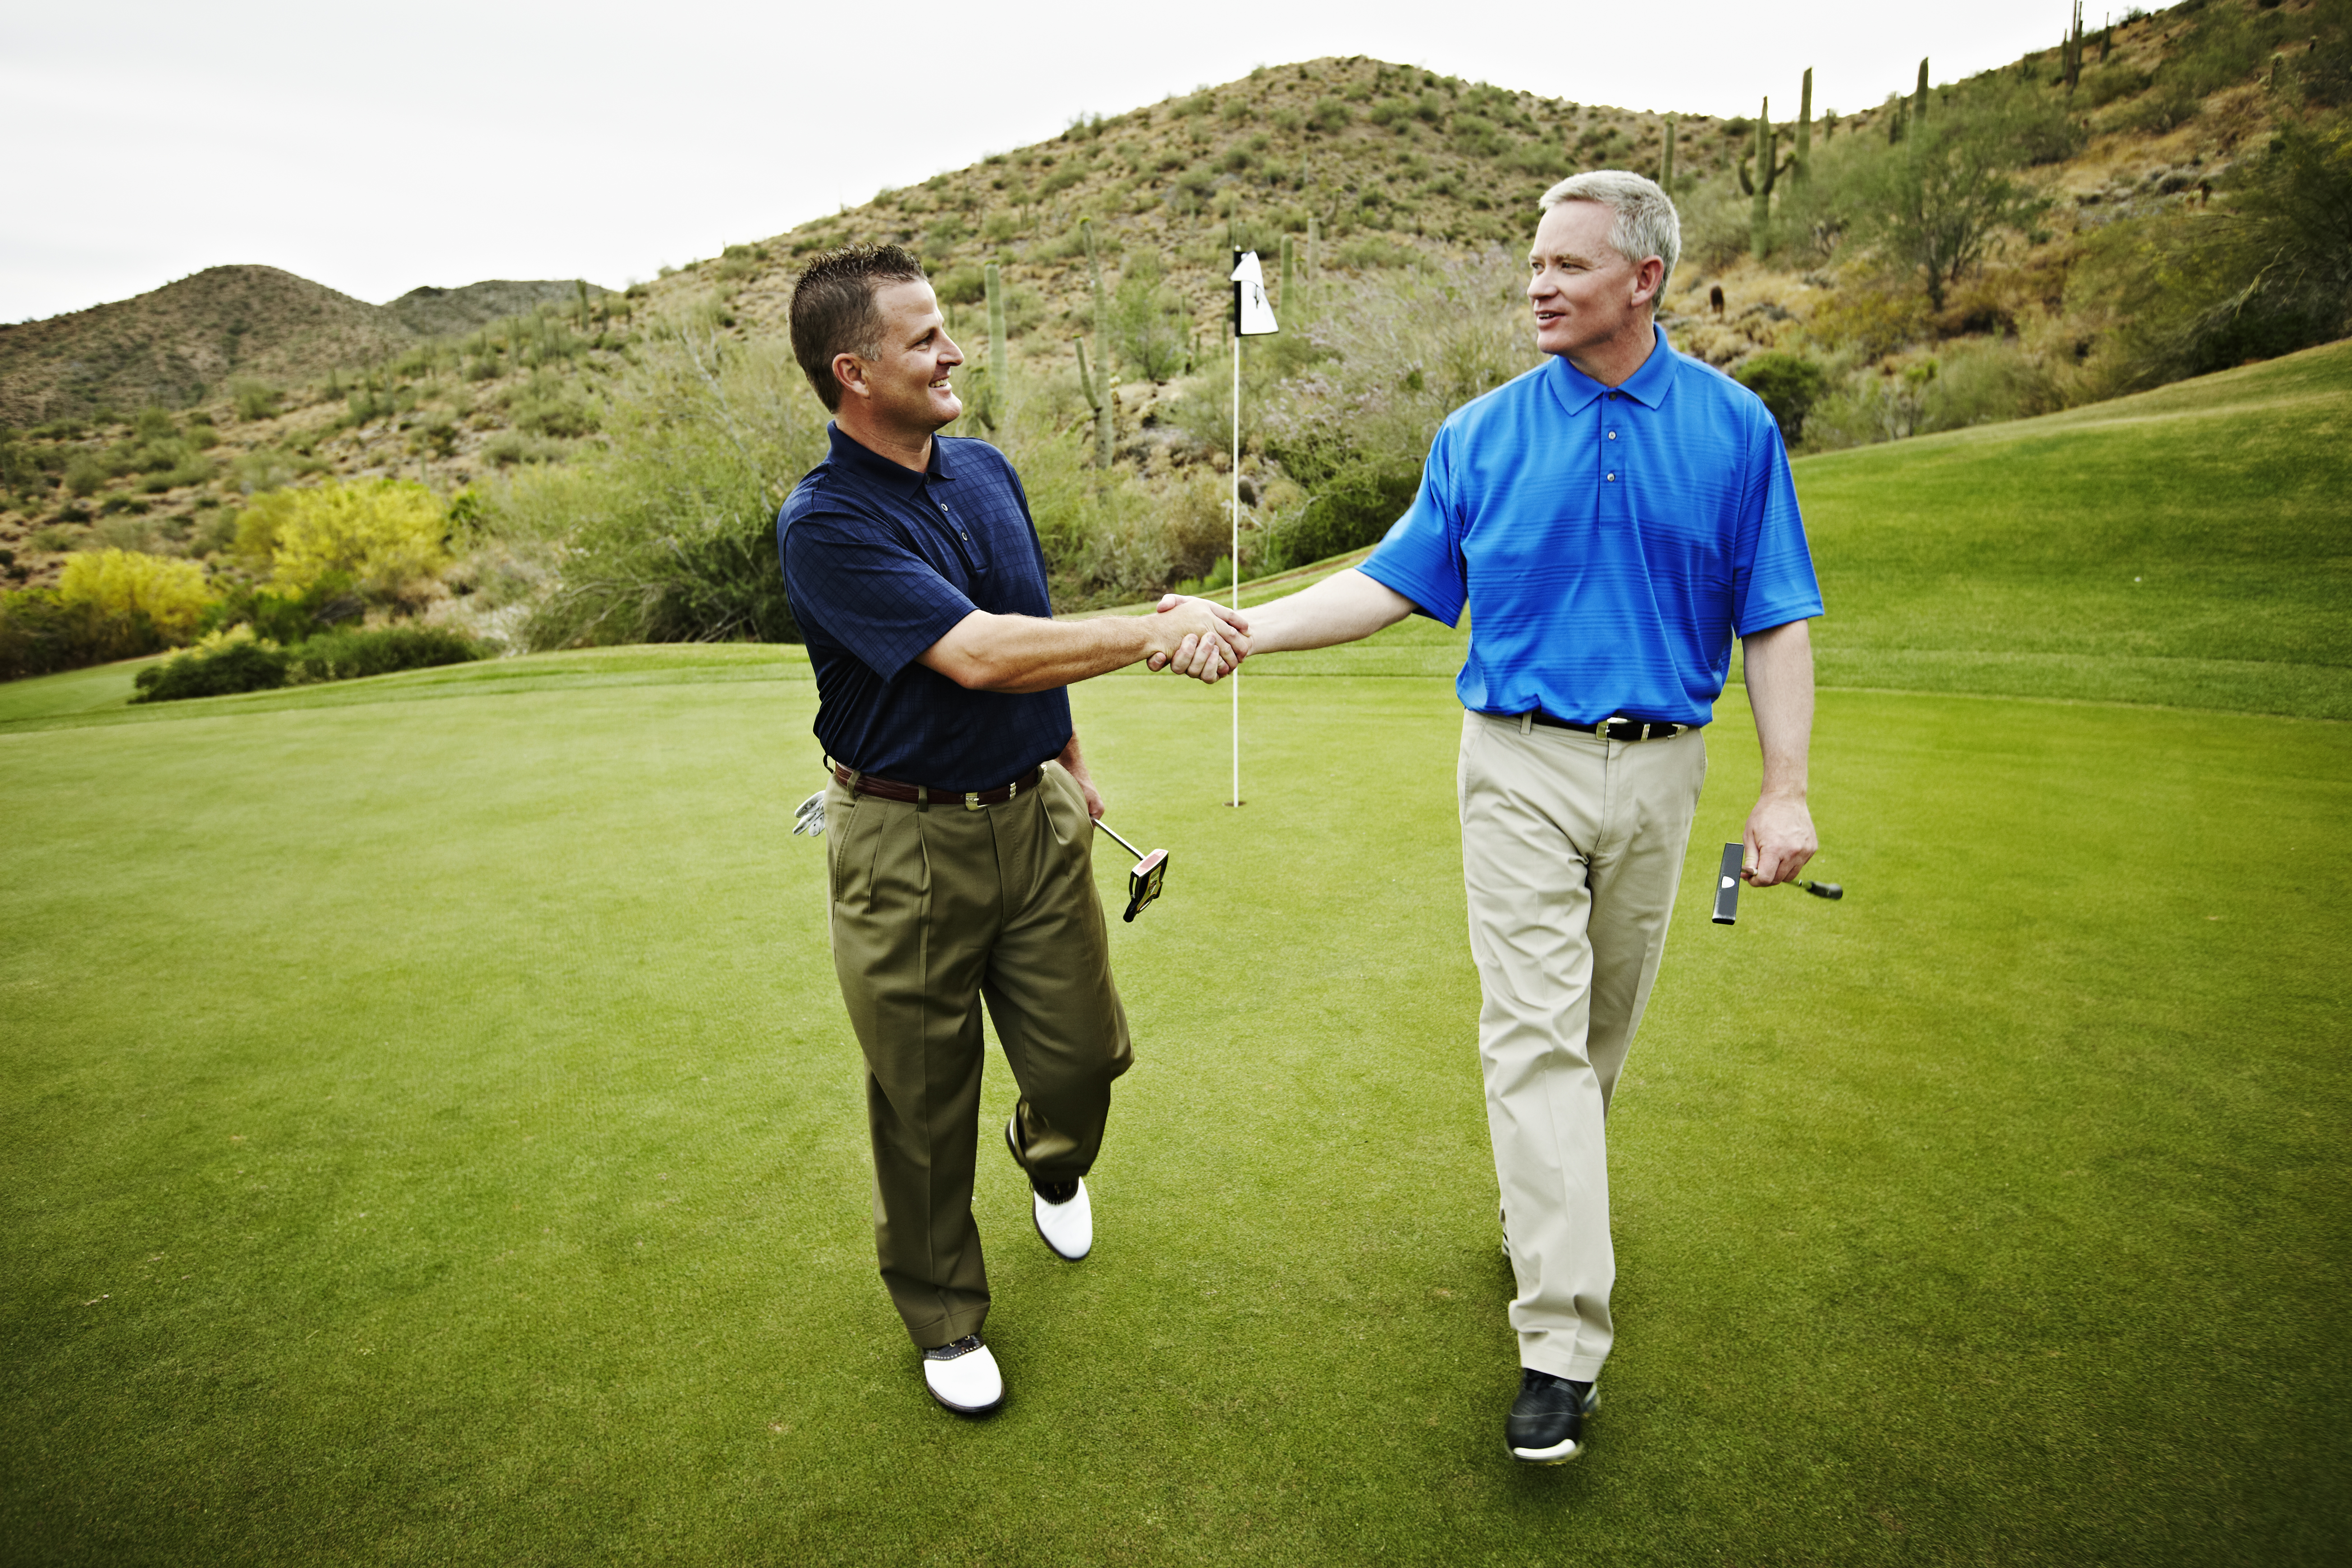 Two golfers walking off green shaking hands